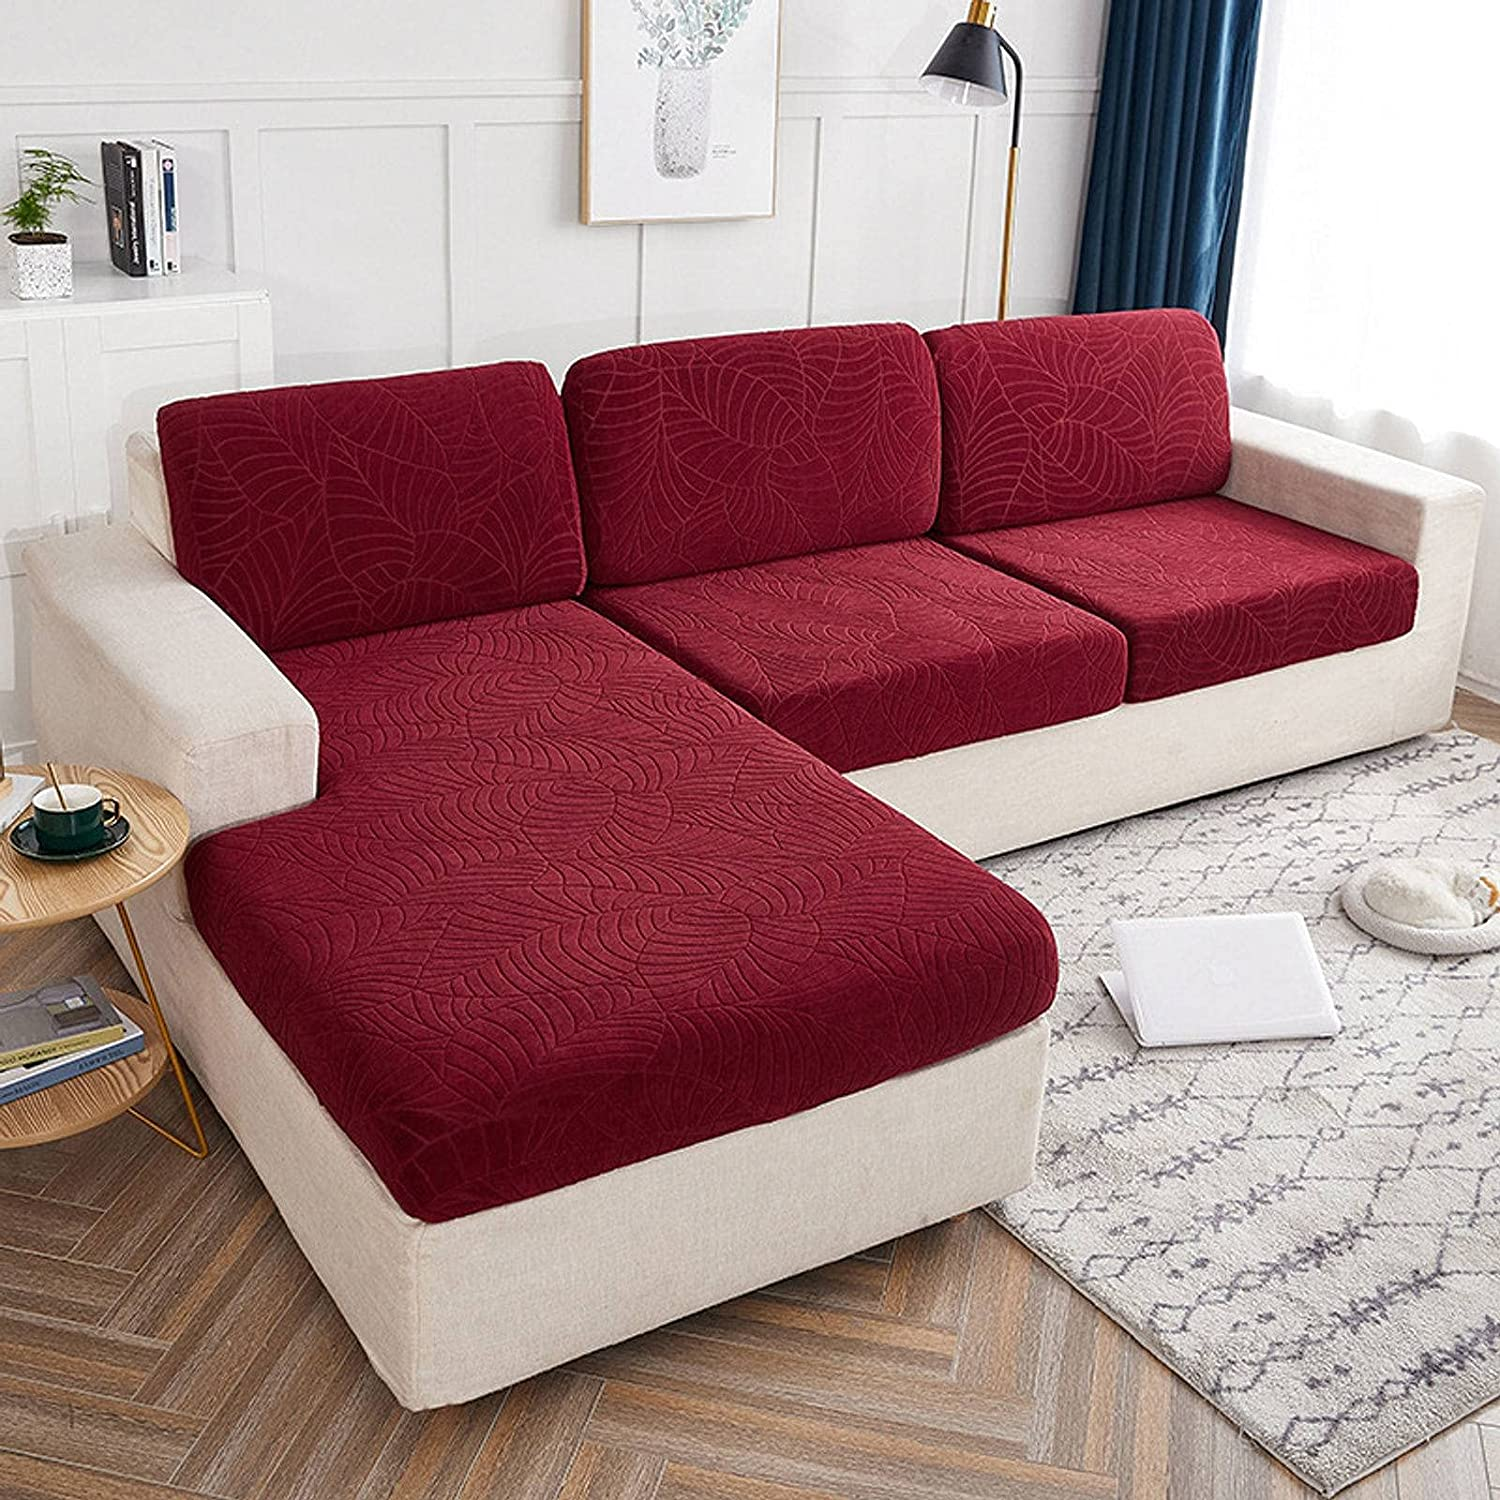 Couch Cushion Covers Elastic Sofa discount 5 popular Cover Relief Lea Seat